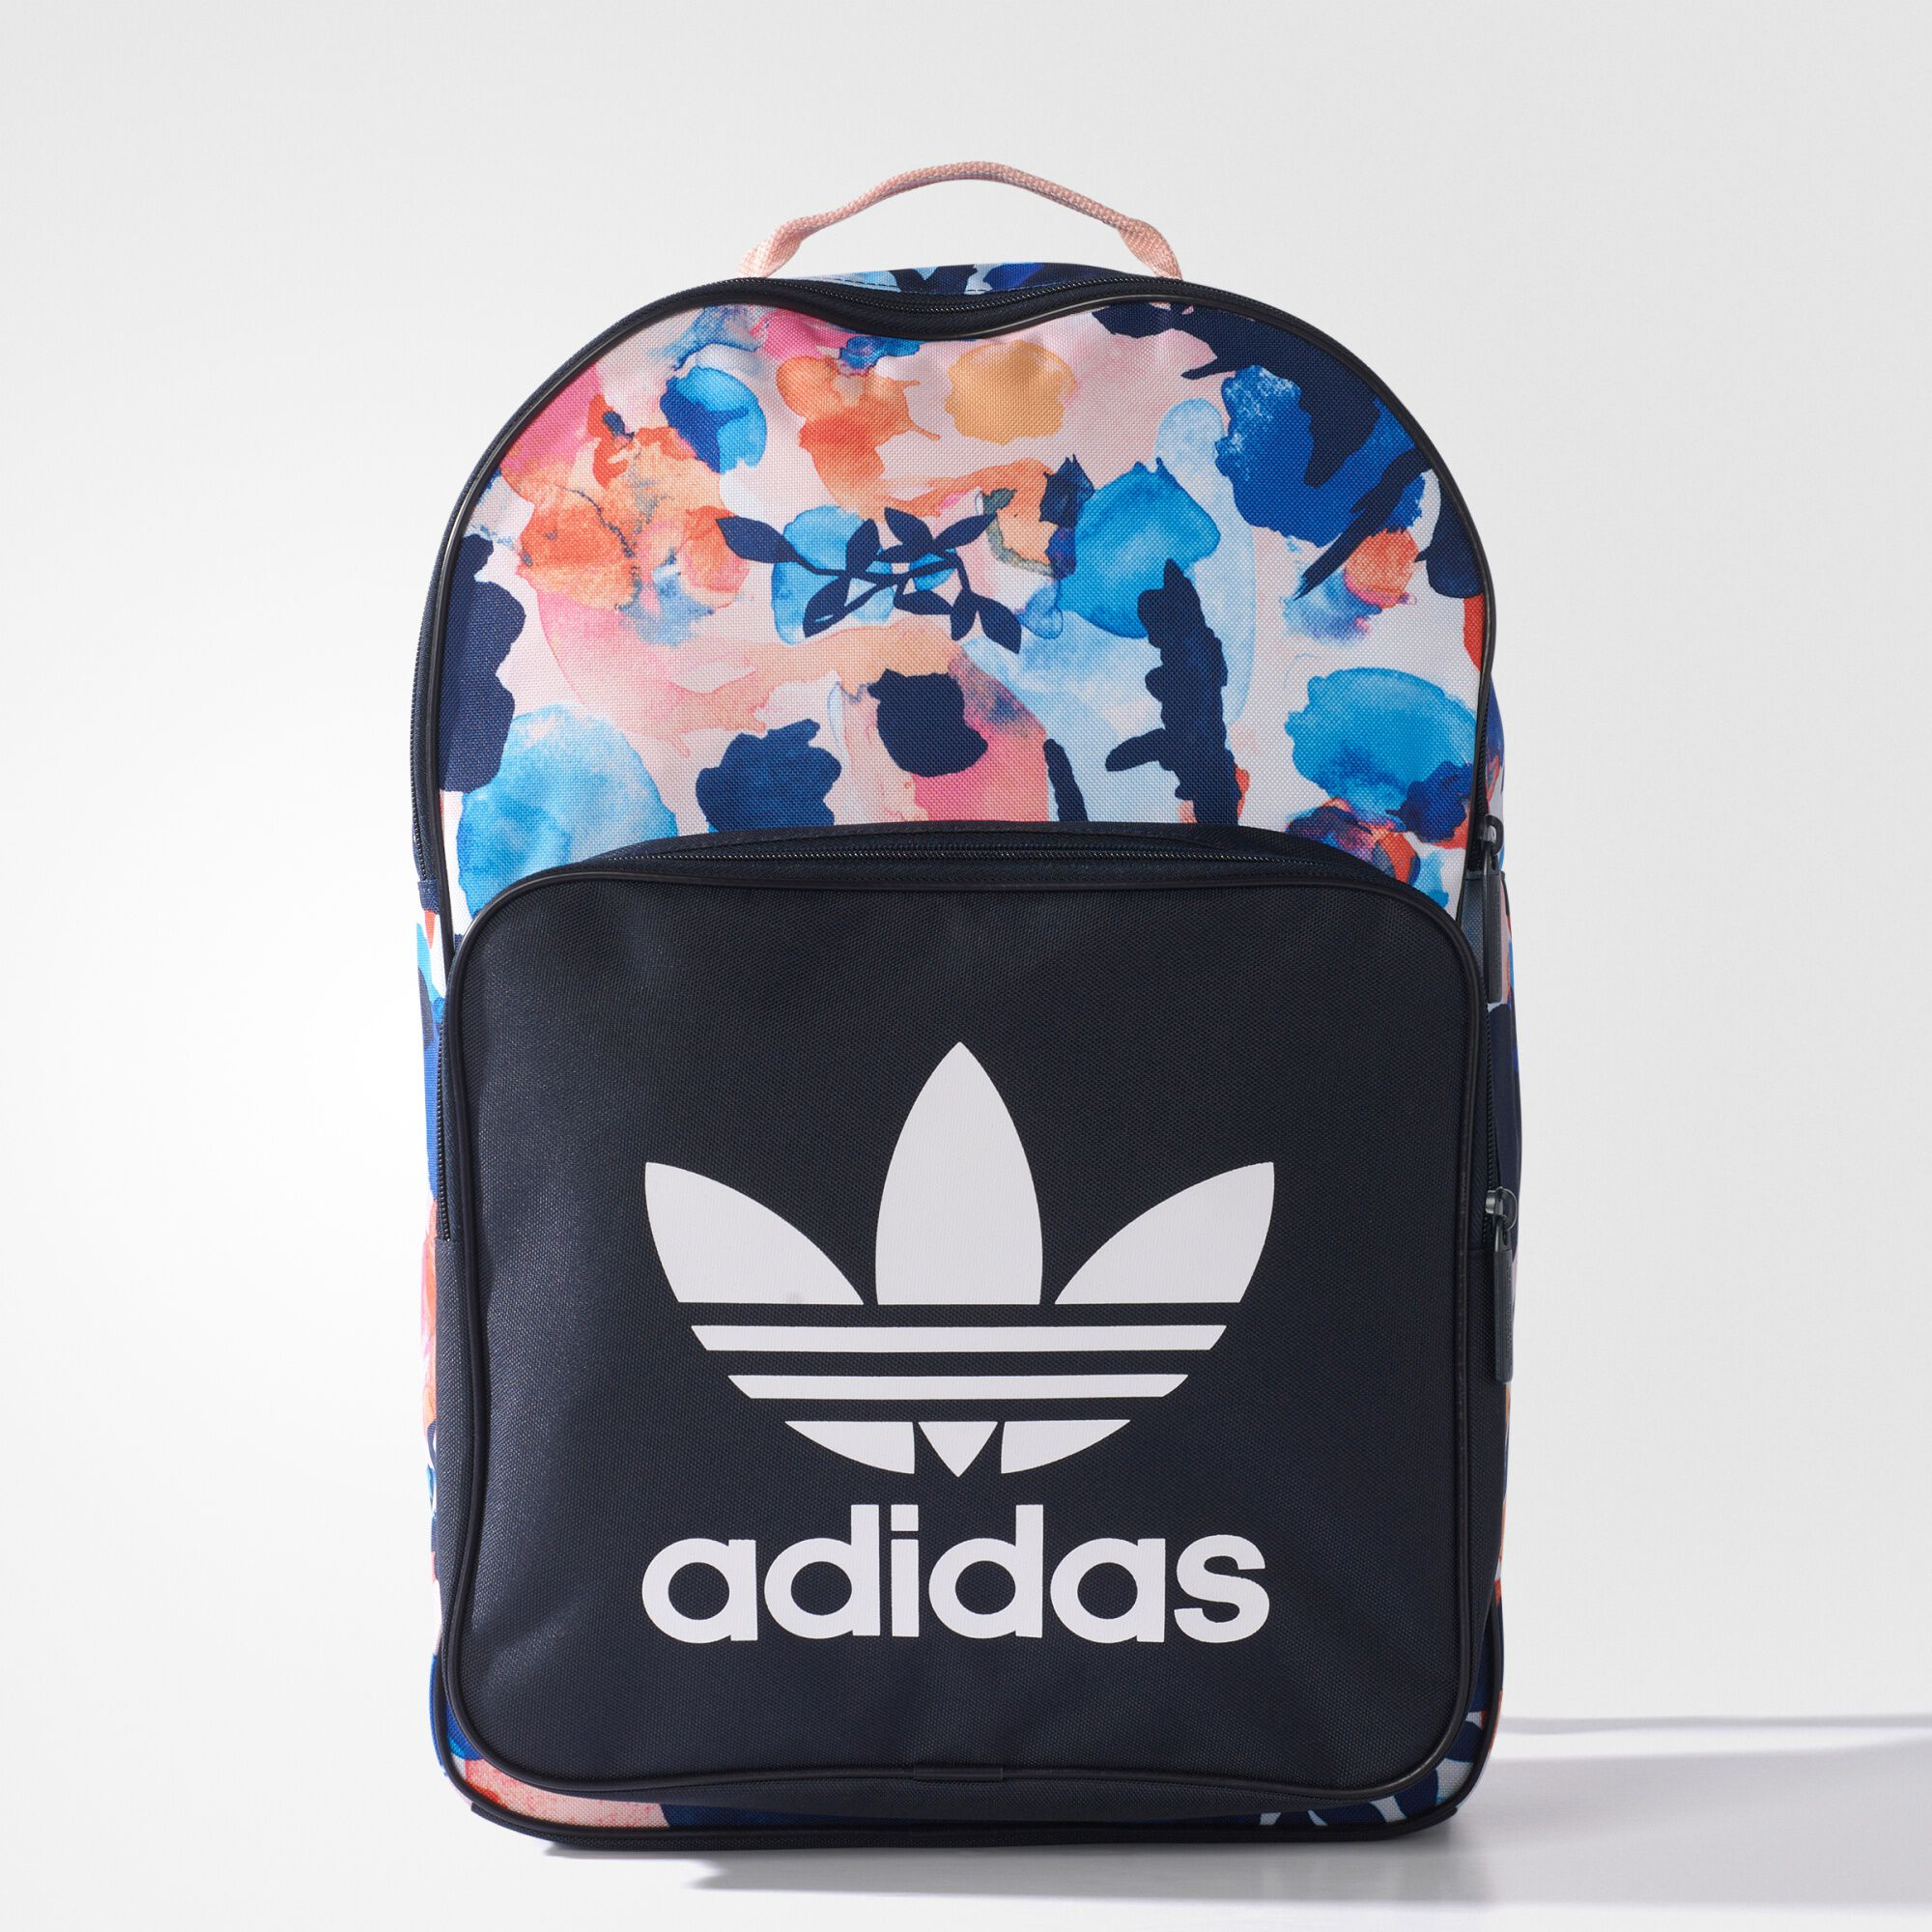 Buy adidas kids backpack   OFF61% Discounted 35f4fad4a2